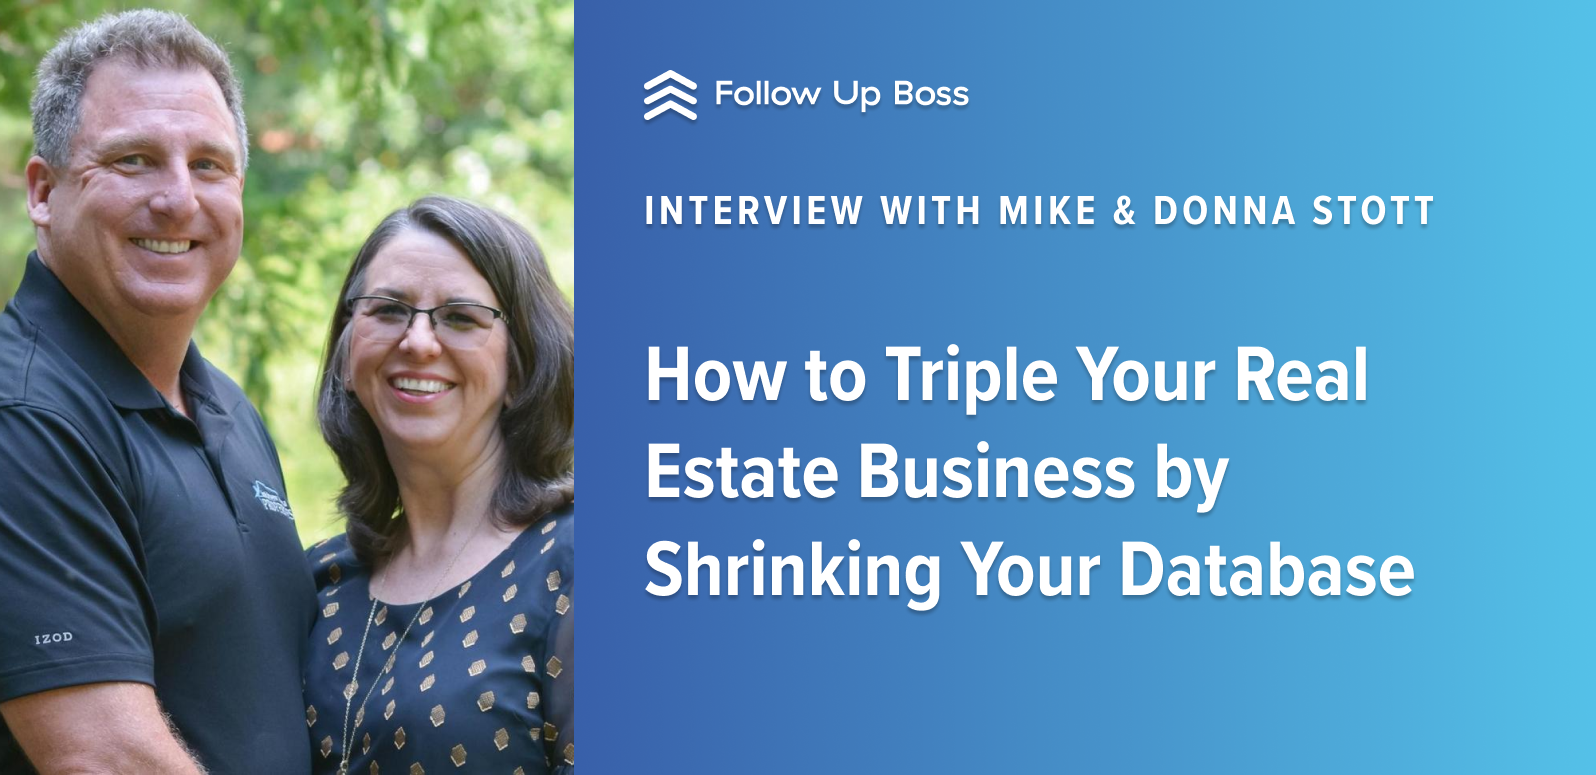 How to Triple Your Real Estate Business by Shrinking Your Database—Interview with Mike and Donna Stott